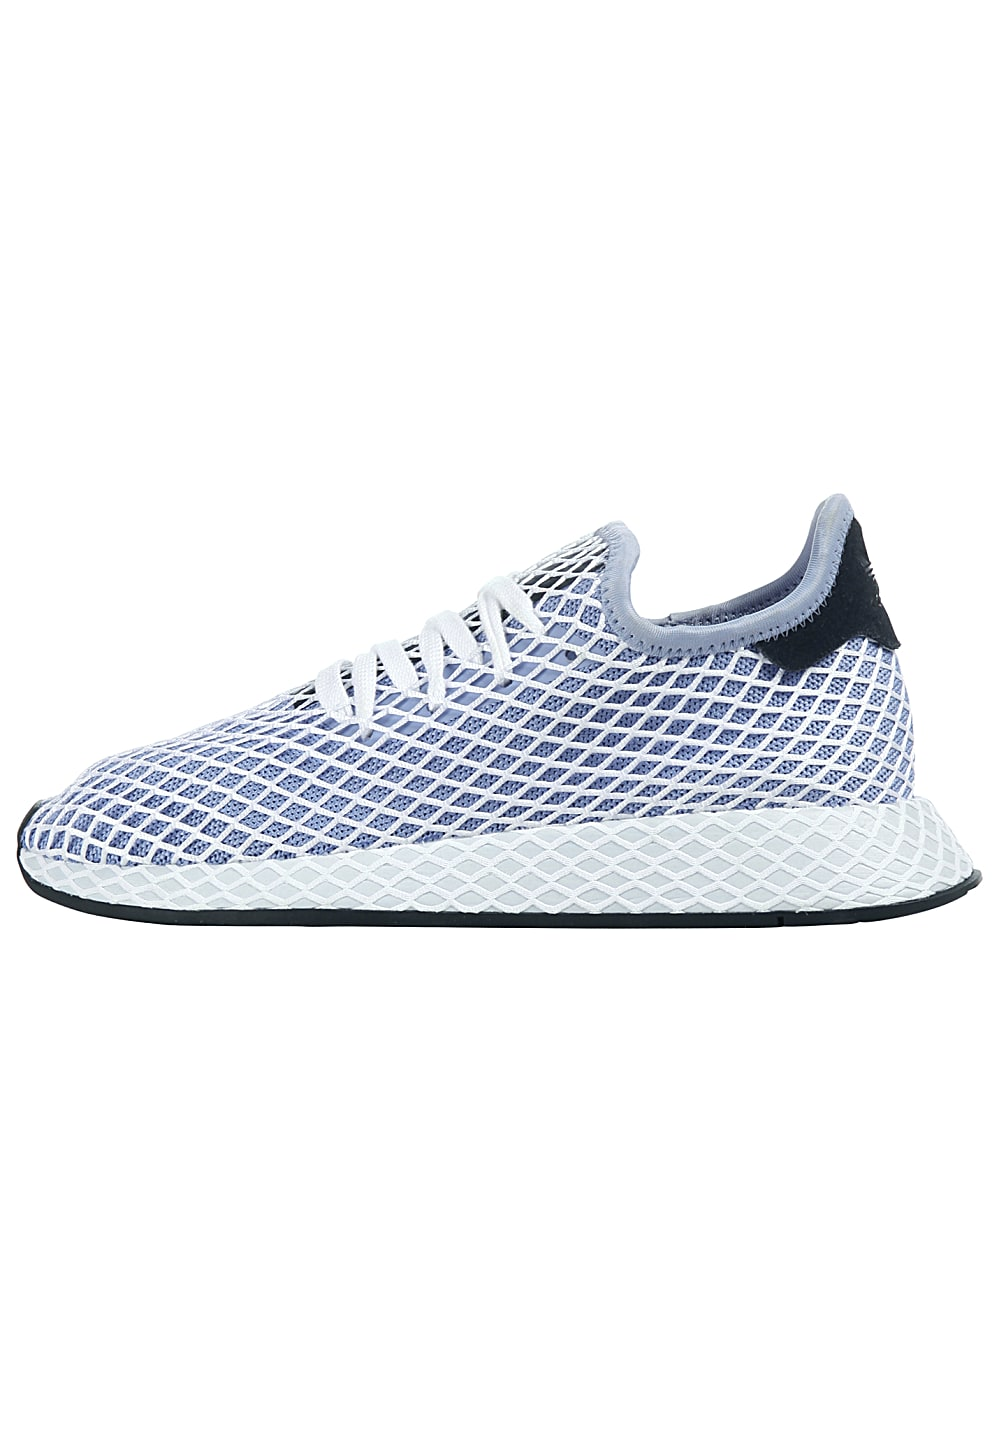 ADIDAS ORIGINALS Deerupt Runner - Sneakers for Women - Blue